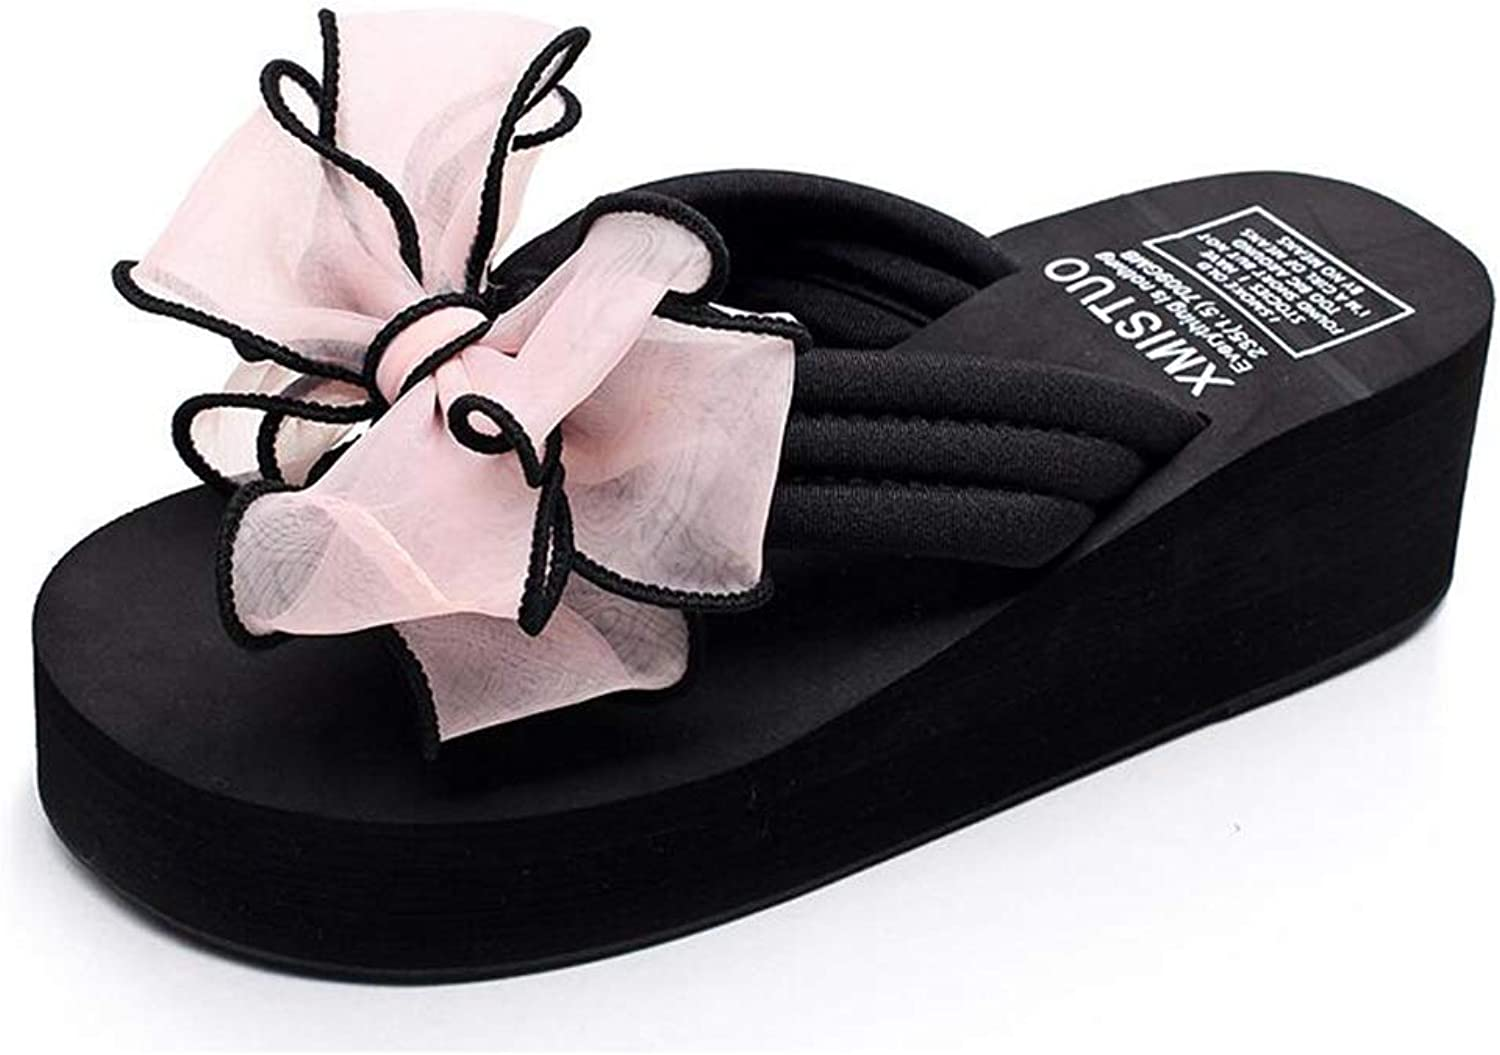 Women's summer wedge sandals, bow flip-flops, non-slip thick-soled high-heeled sandals, girls' feet, fashion slippers